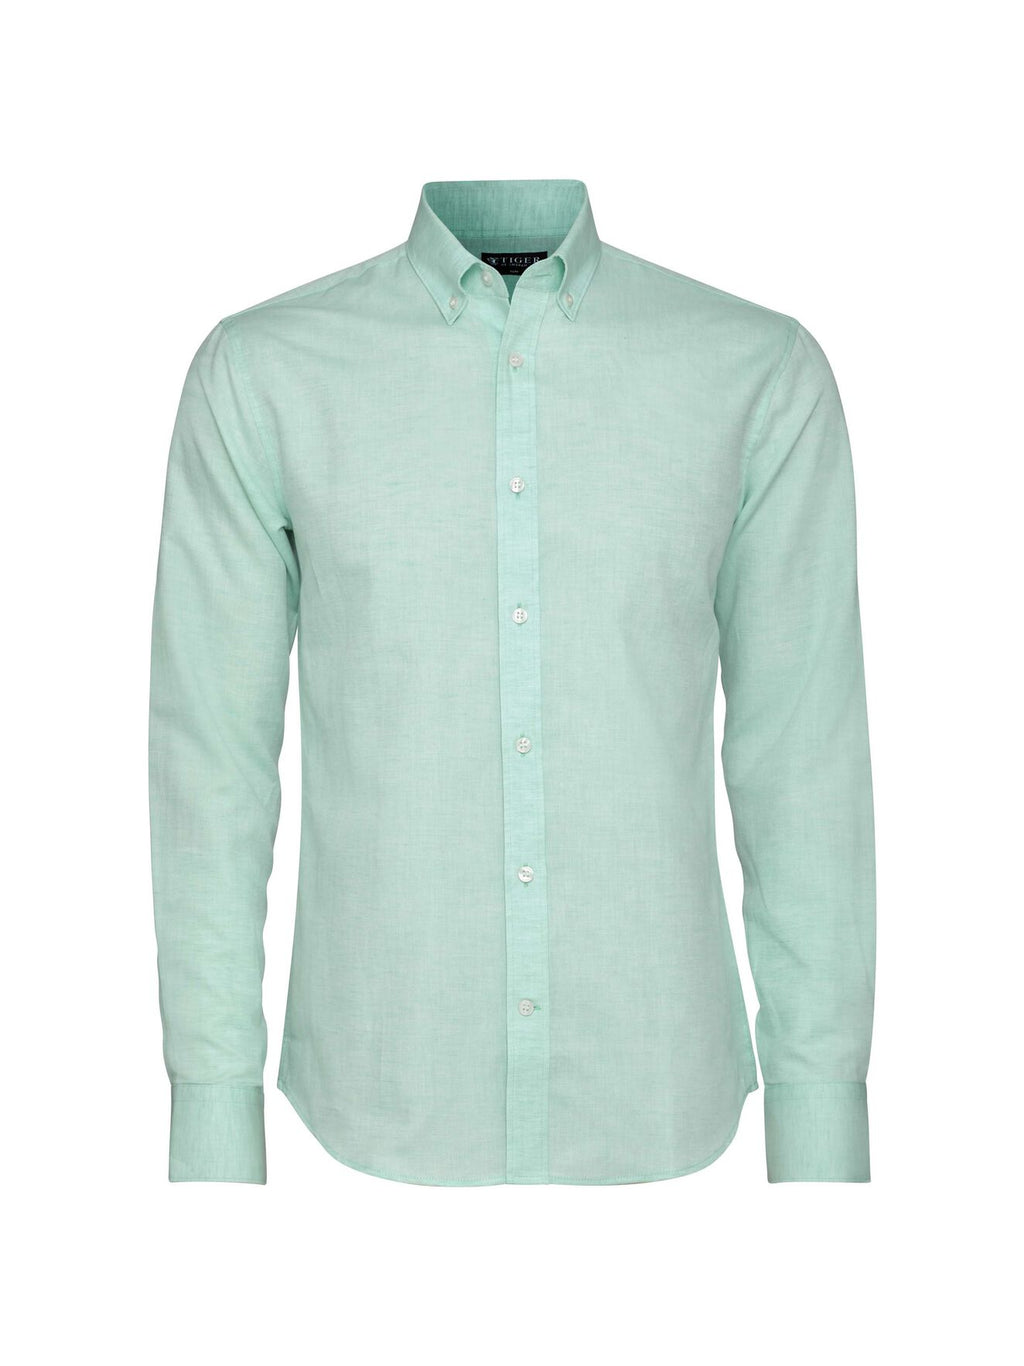 donald shirt green turquoise t60791010 Tiger of Sweden